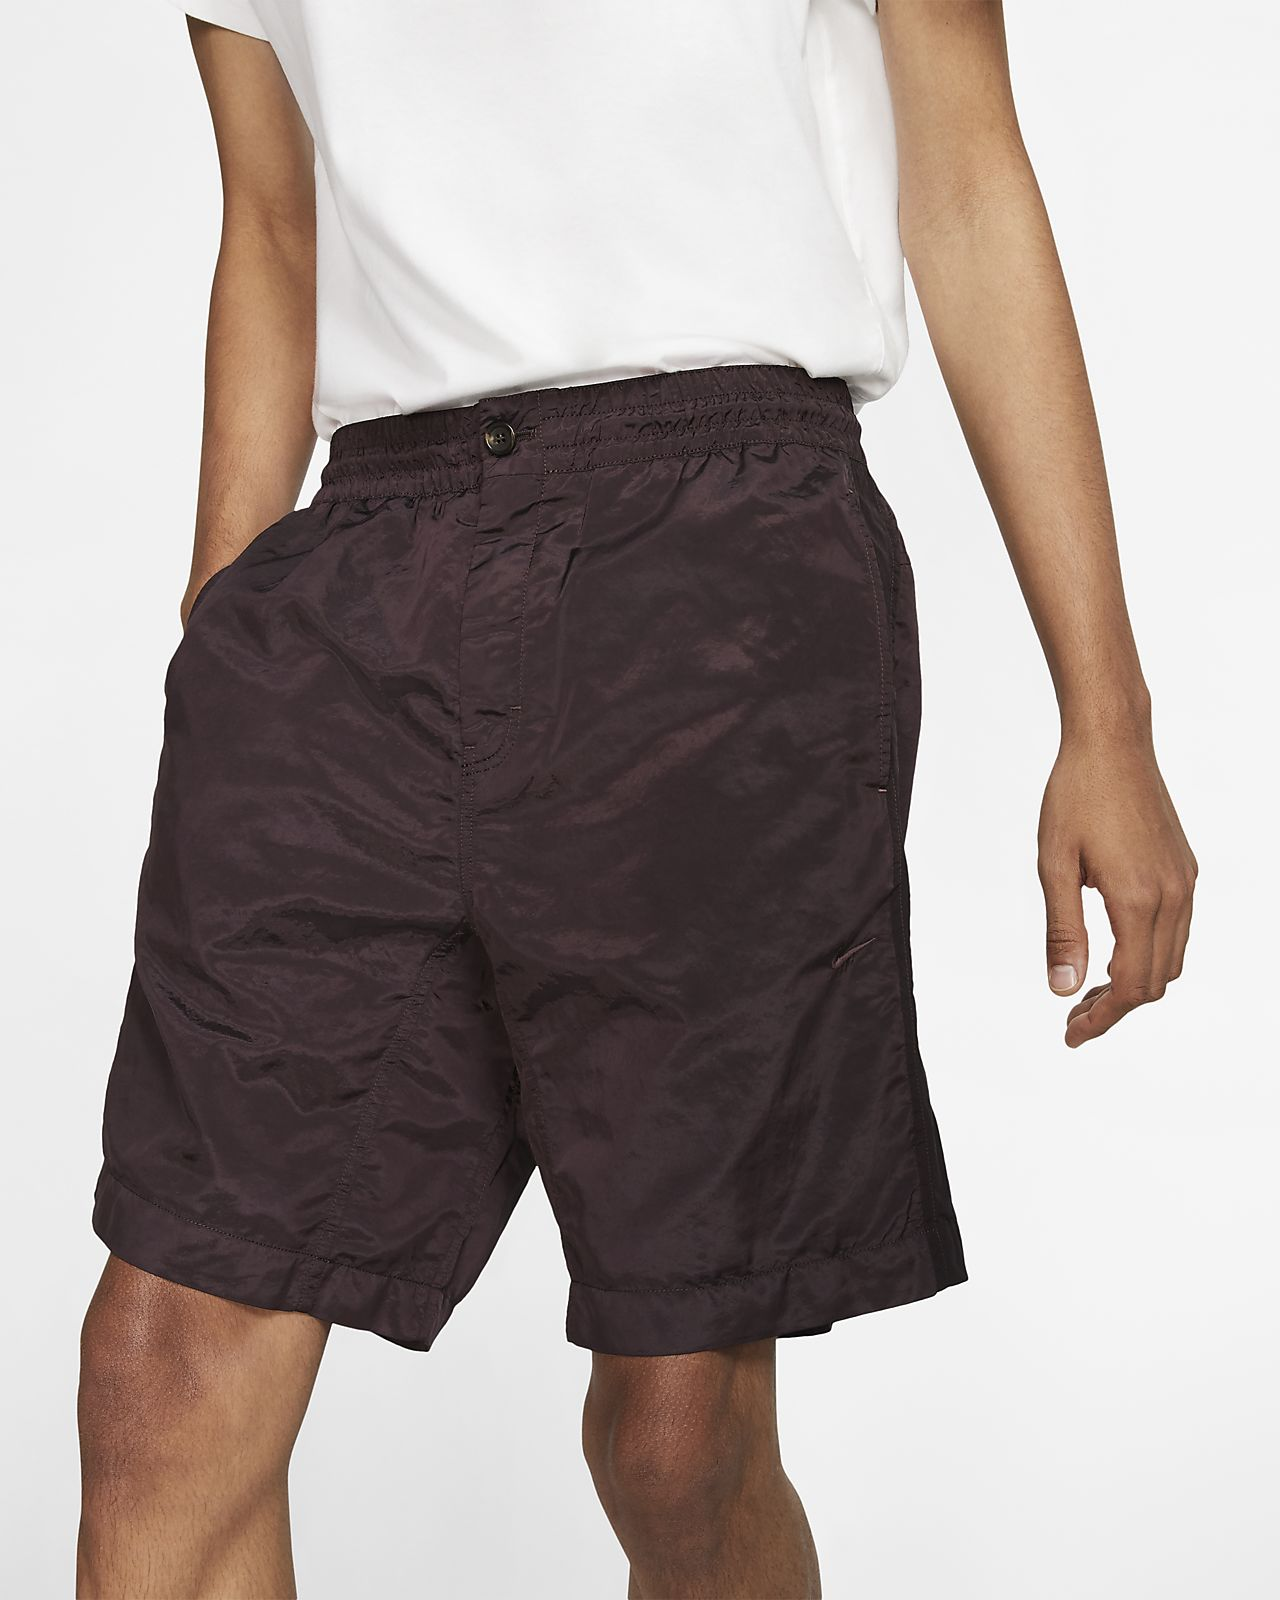 NikeLab Made in Italy Collection Men's Shorts